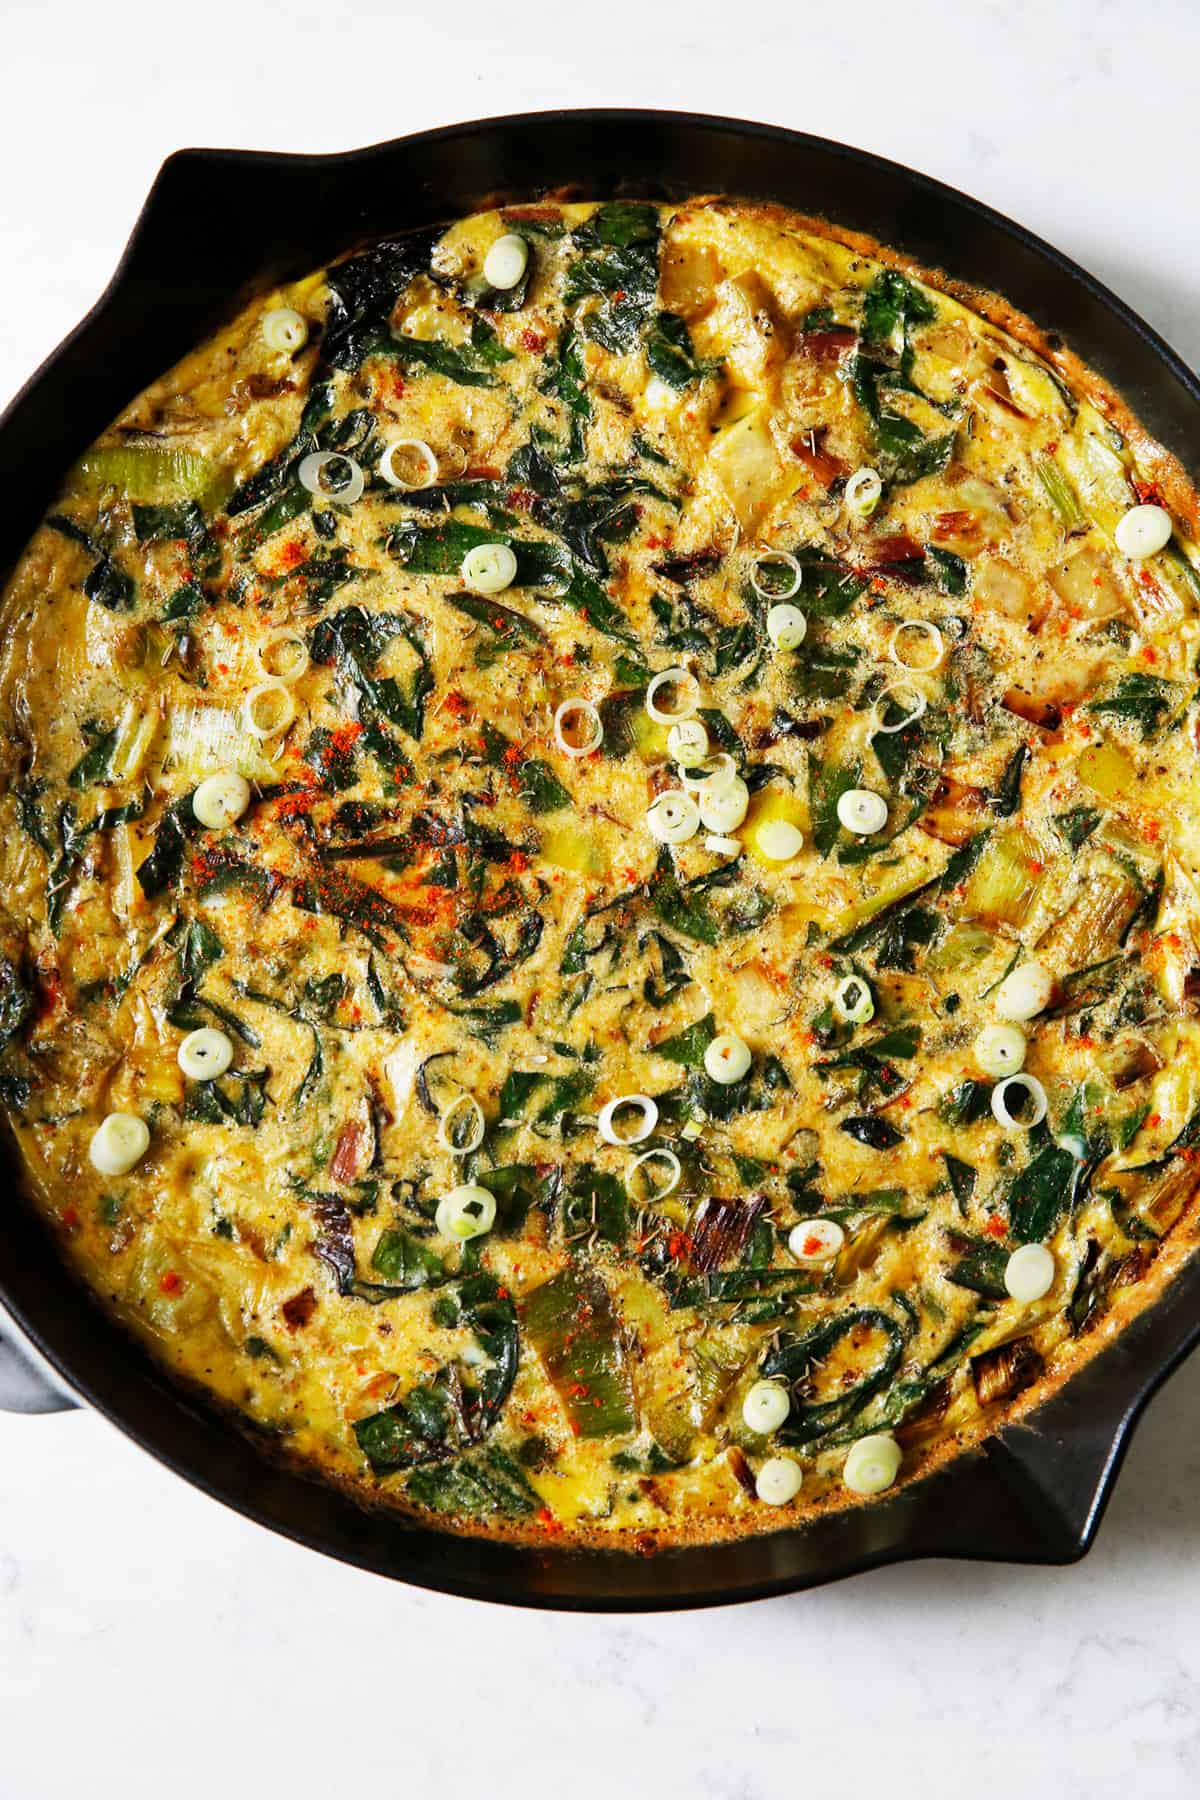 A frittata in a cast iron skillet with potatoes and leeks.